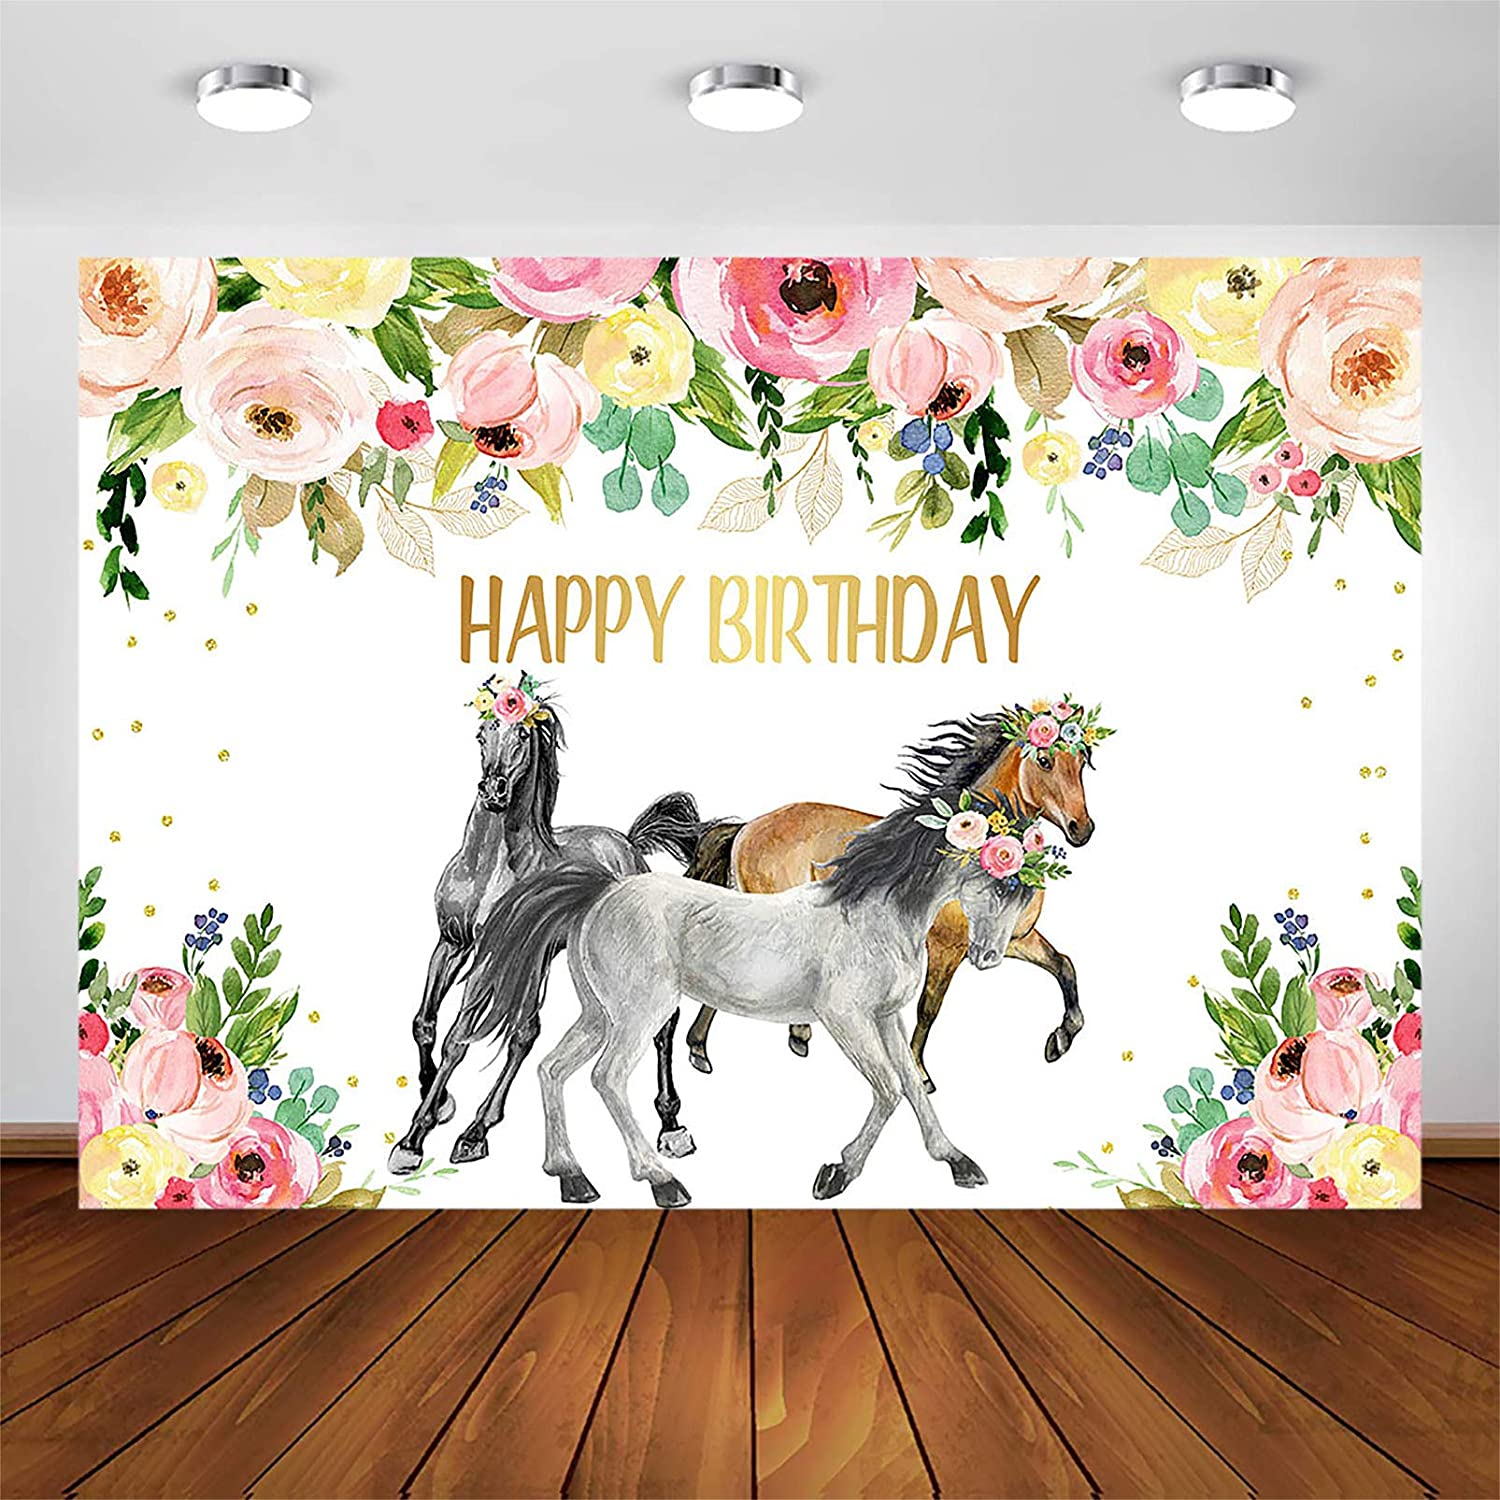 Avezano Horse Birthday Party Backdrop for Girls 7x5ft Cowgirl Western Horse Party Photography Background Decorations Banner Photo Booth Photoshoot